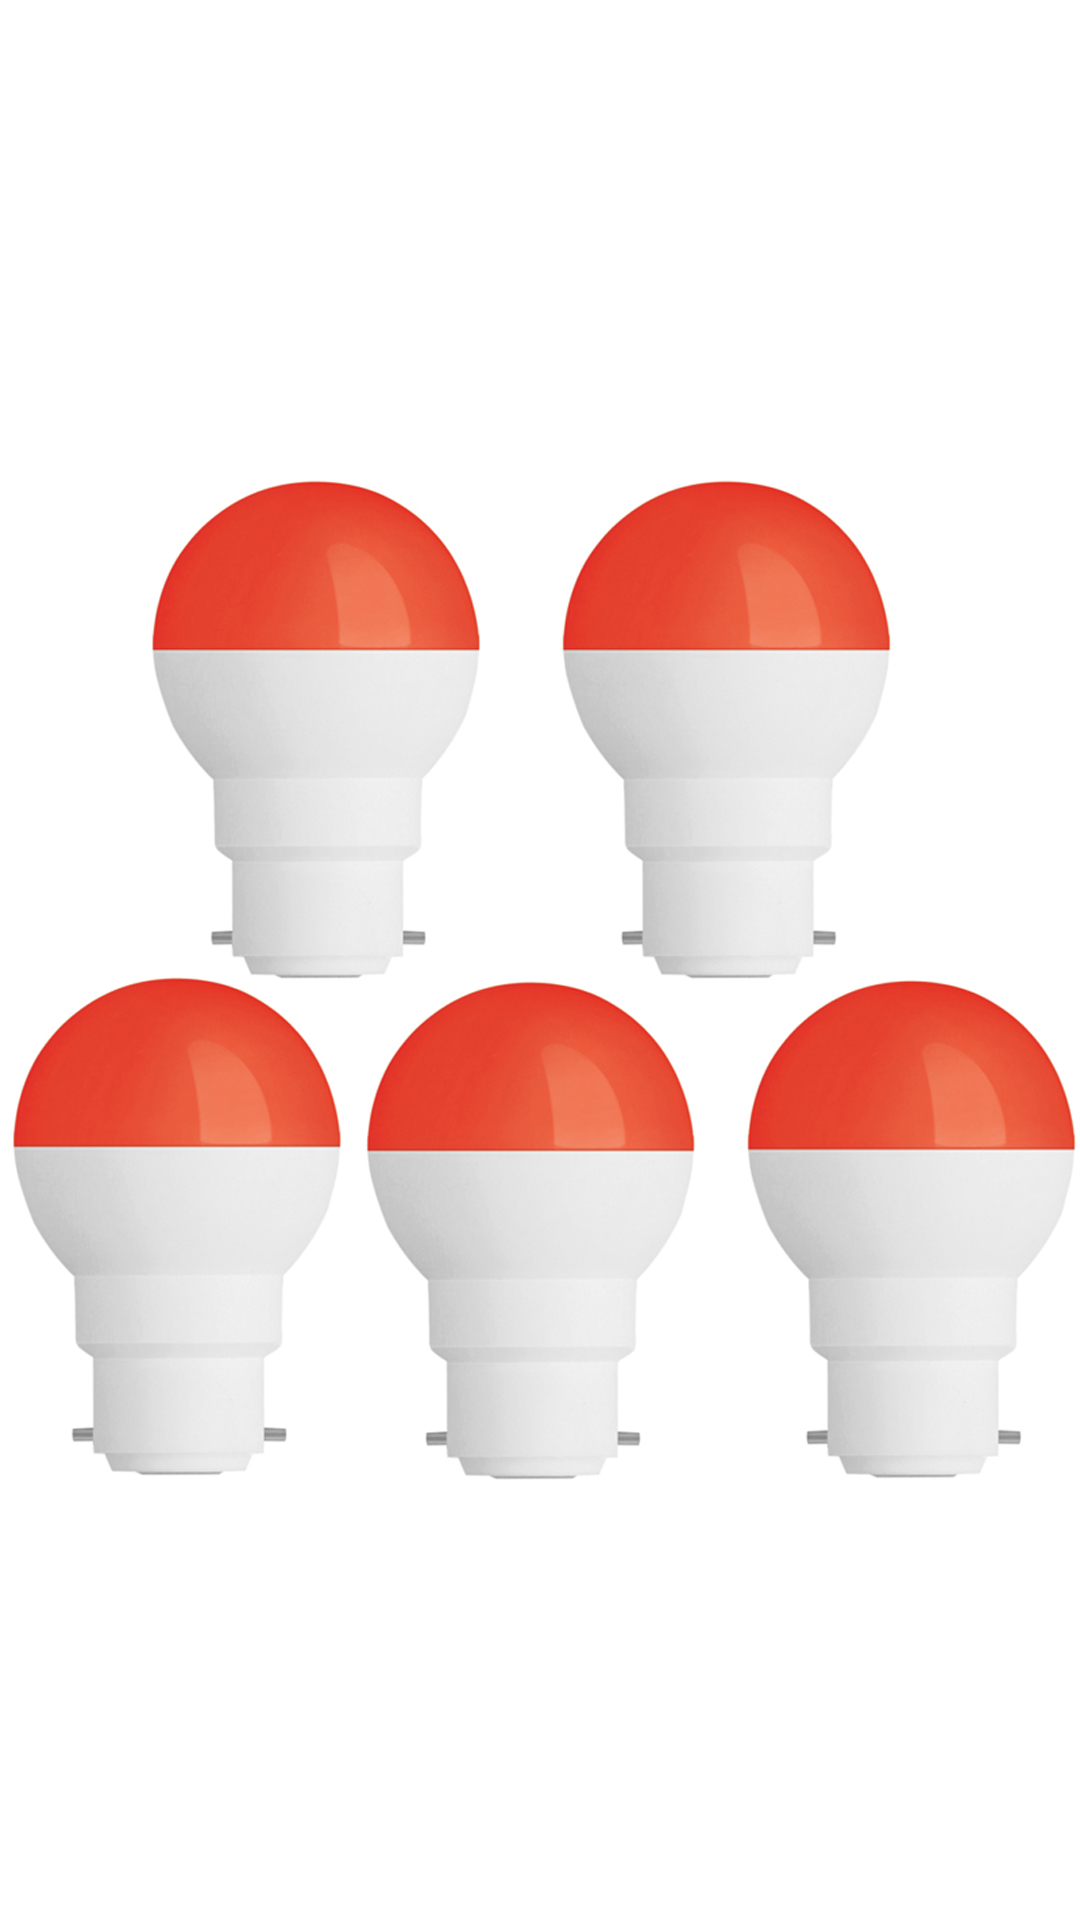 0.5W-Led-Candel-Night-White-Lamp-Round-(Red,-Pack-of-5)